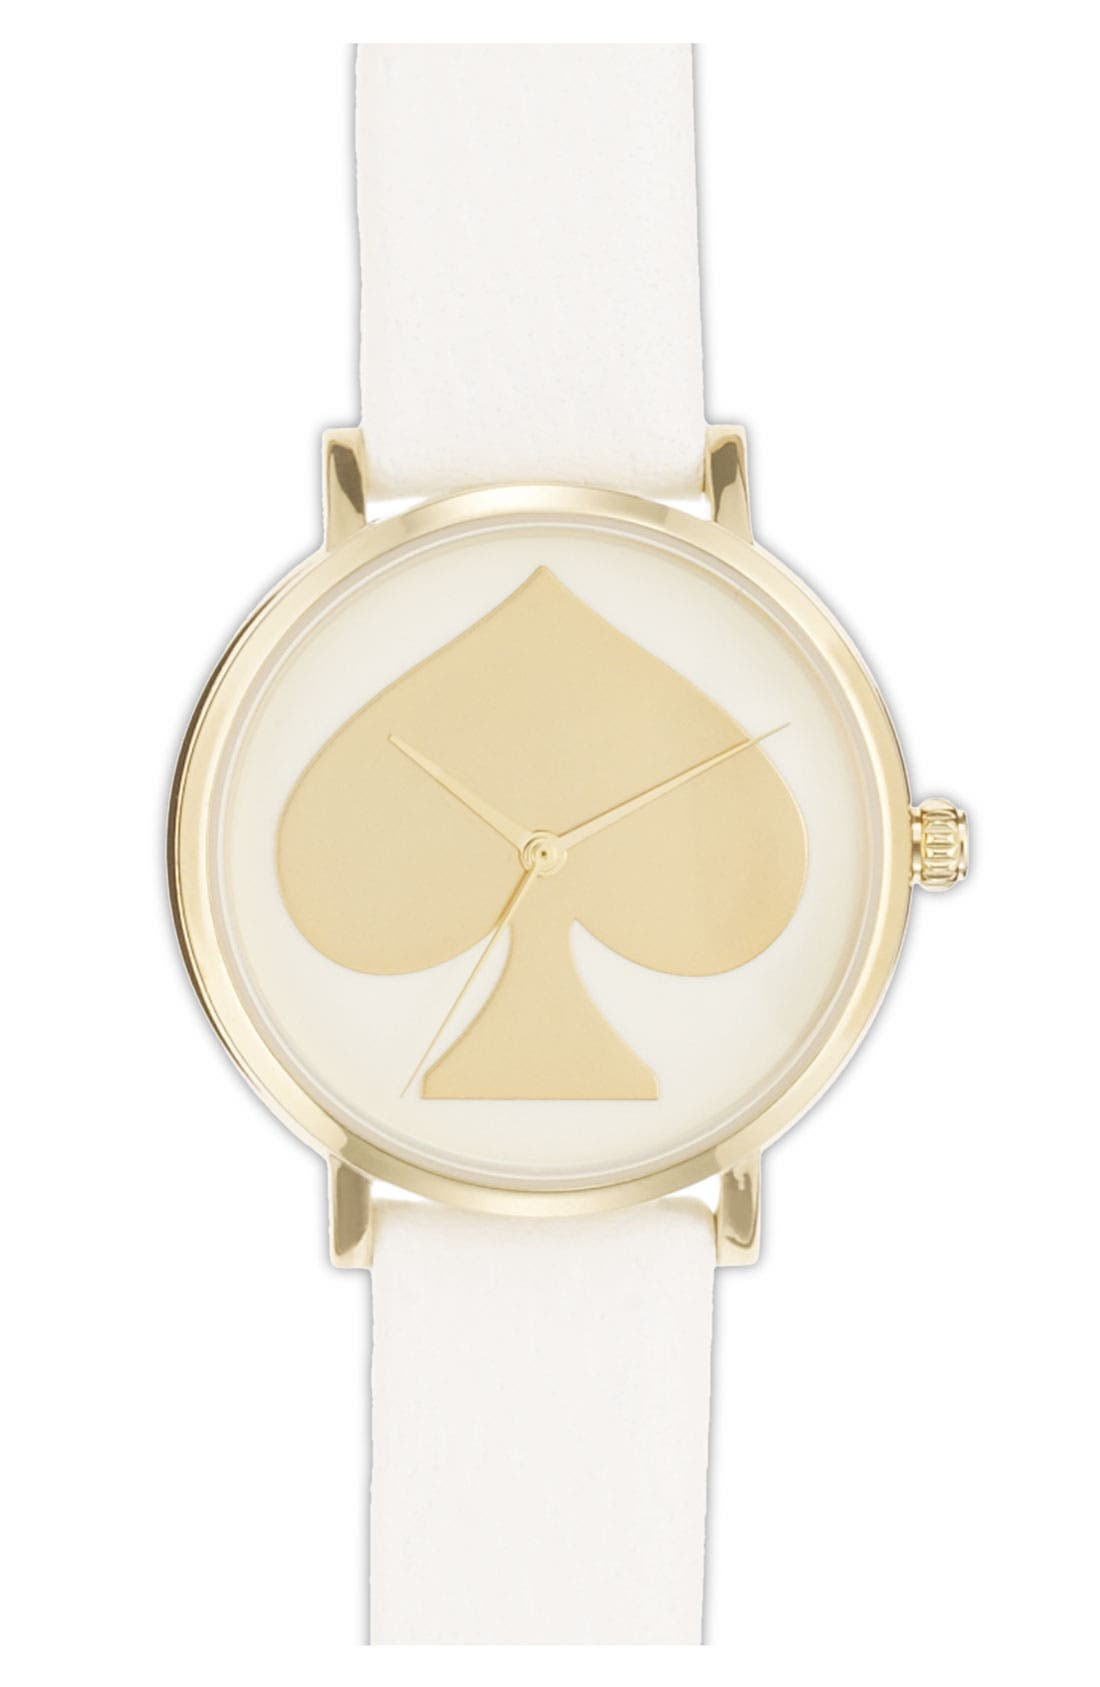 Main Image - kate spade new york 'metro' patterned dial watch, 34mm